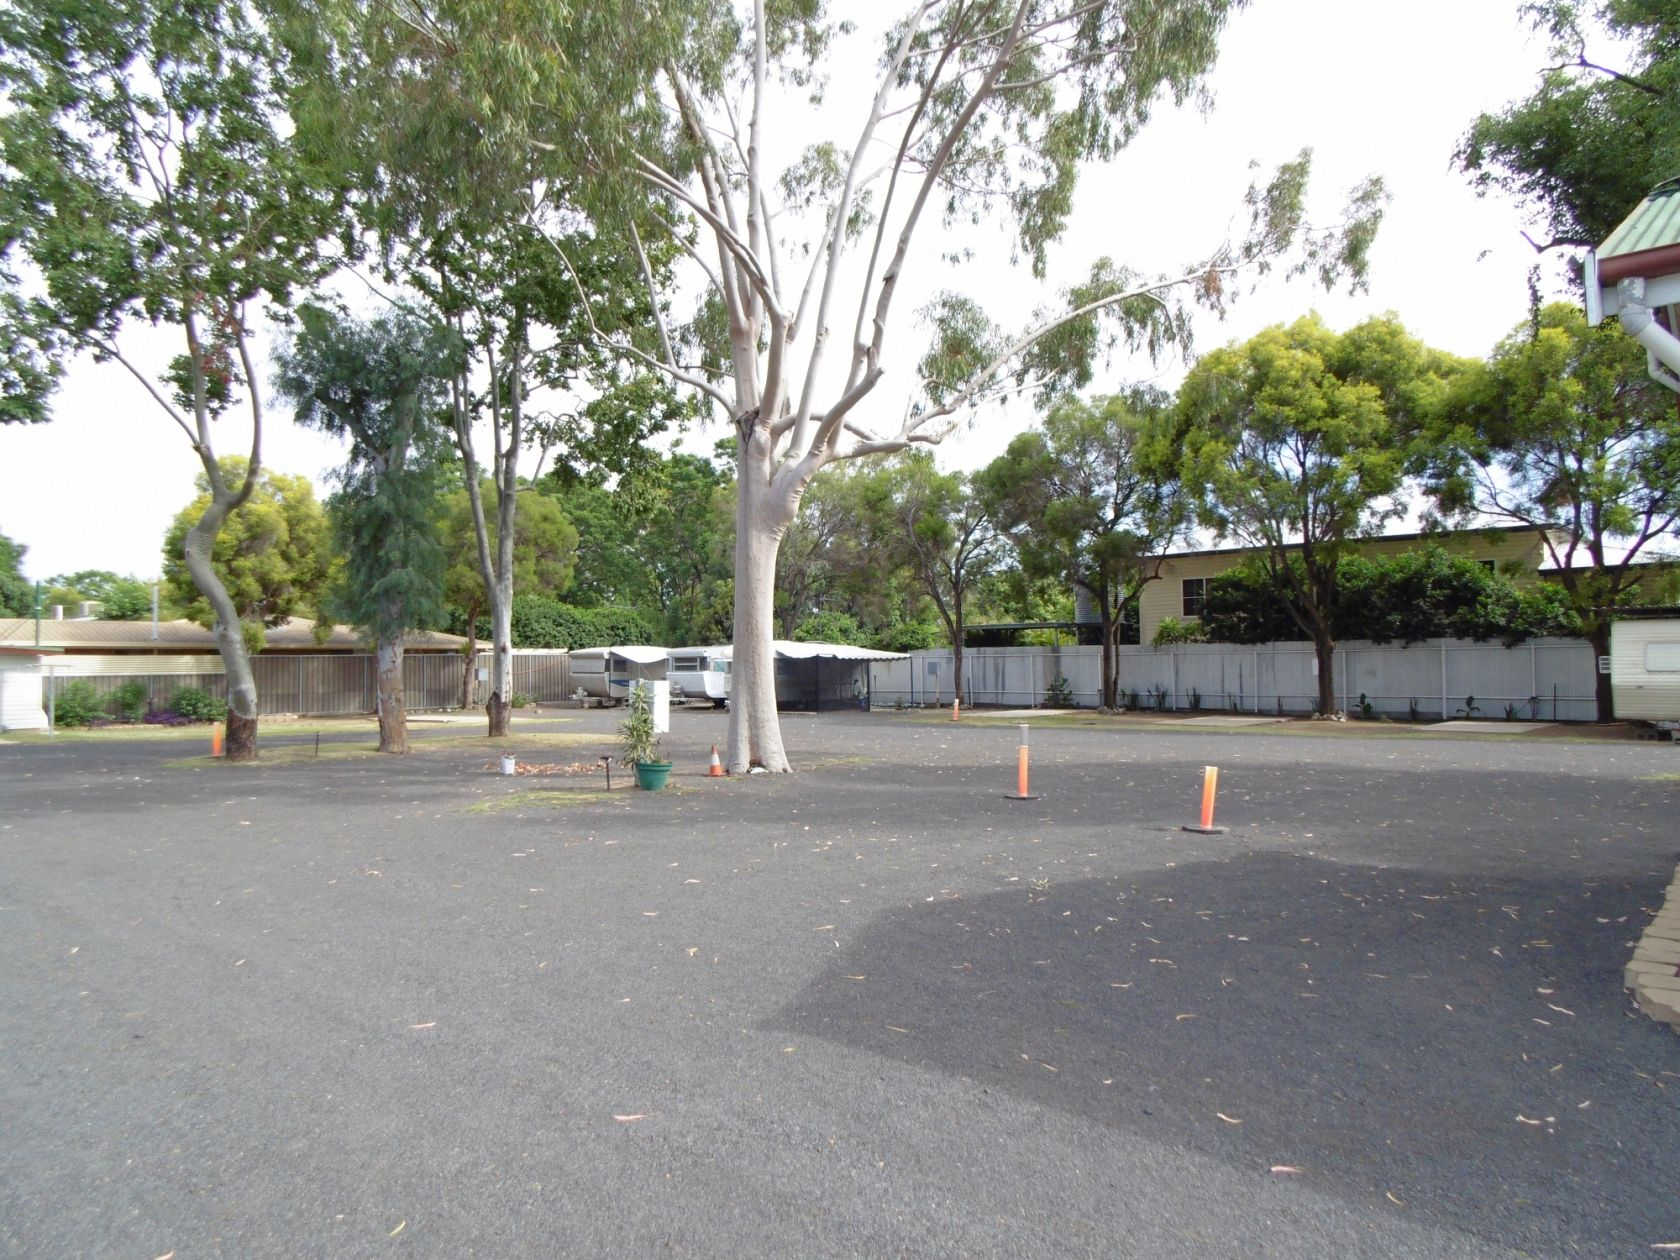 Caravan Park - Land, Buildings and Business for a Great Price